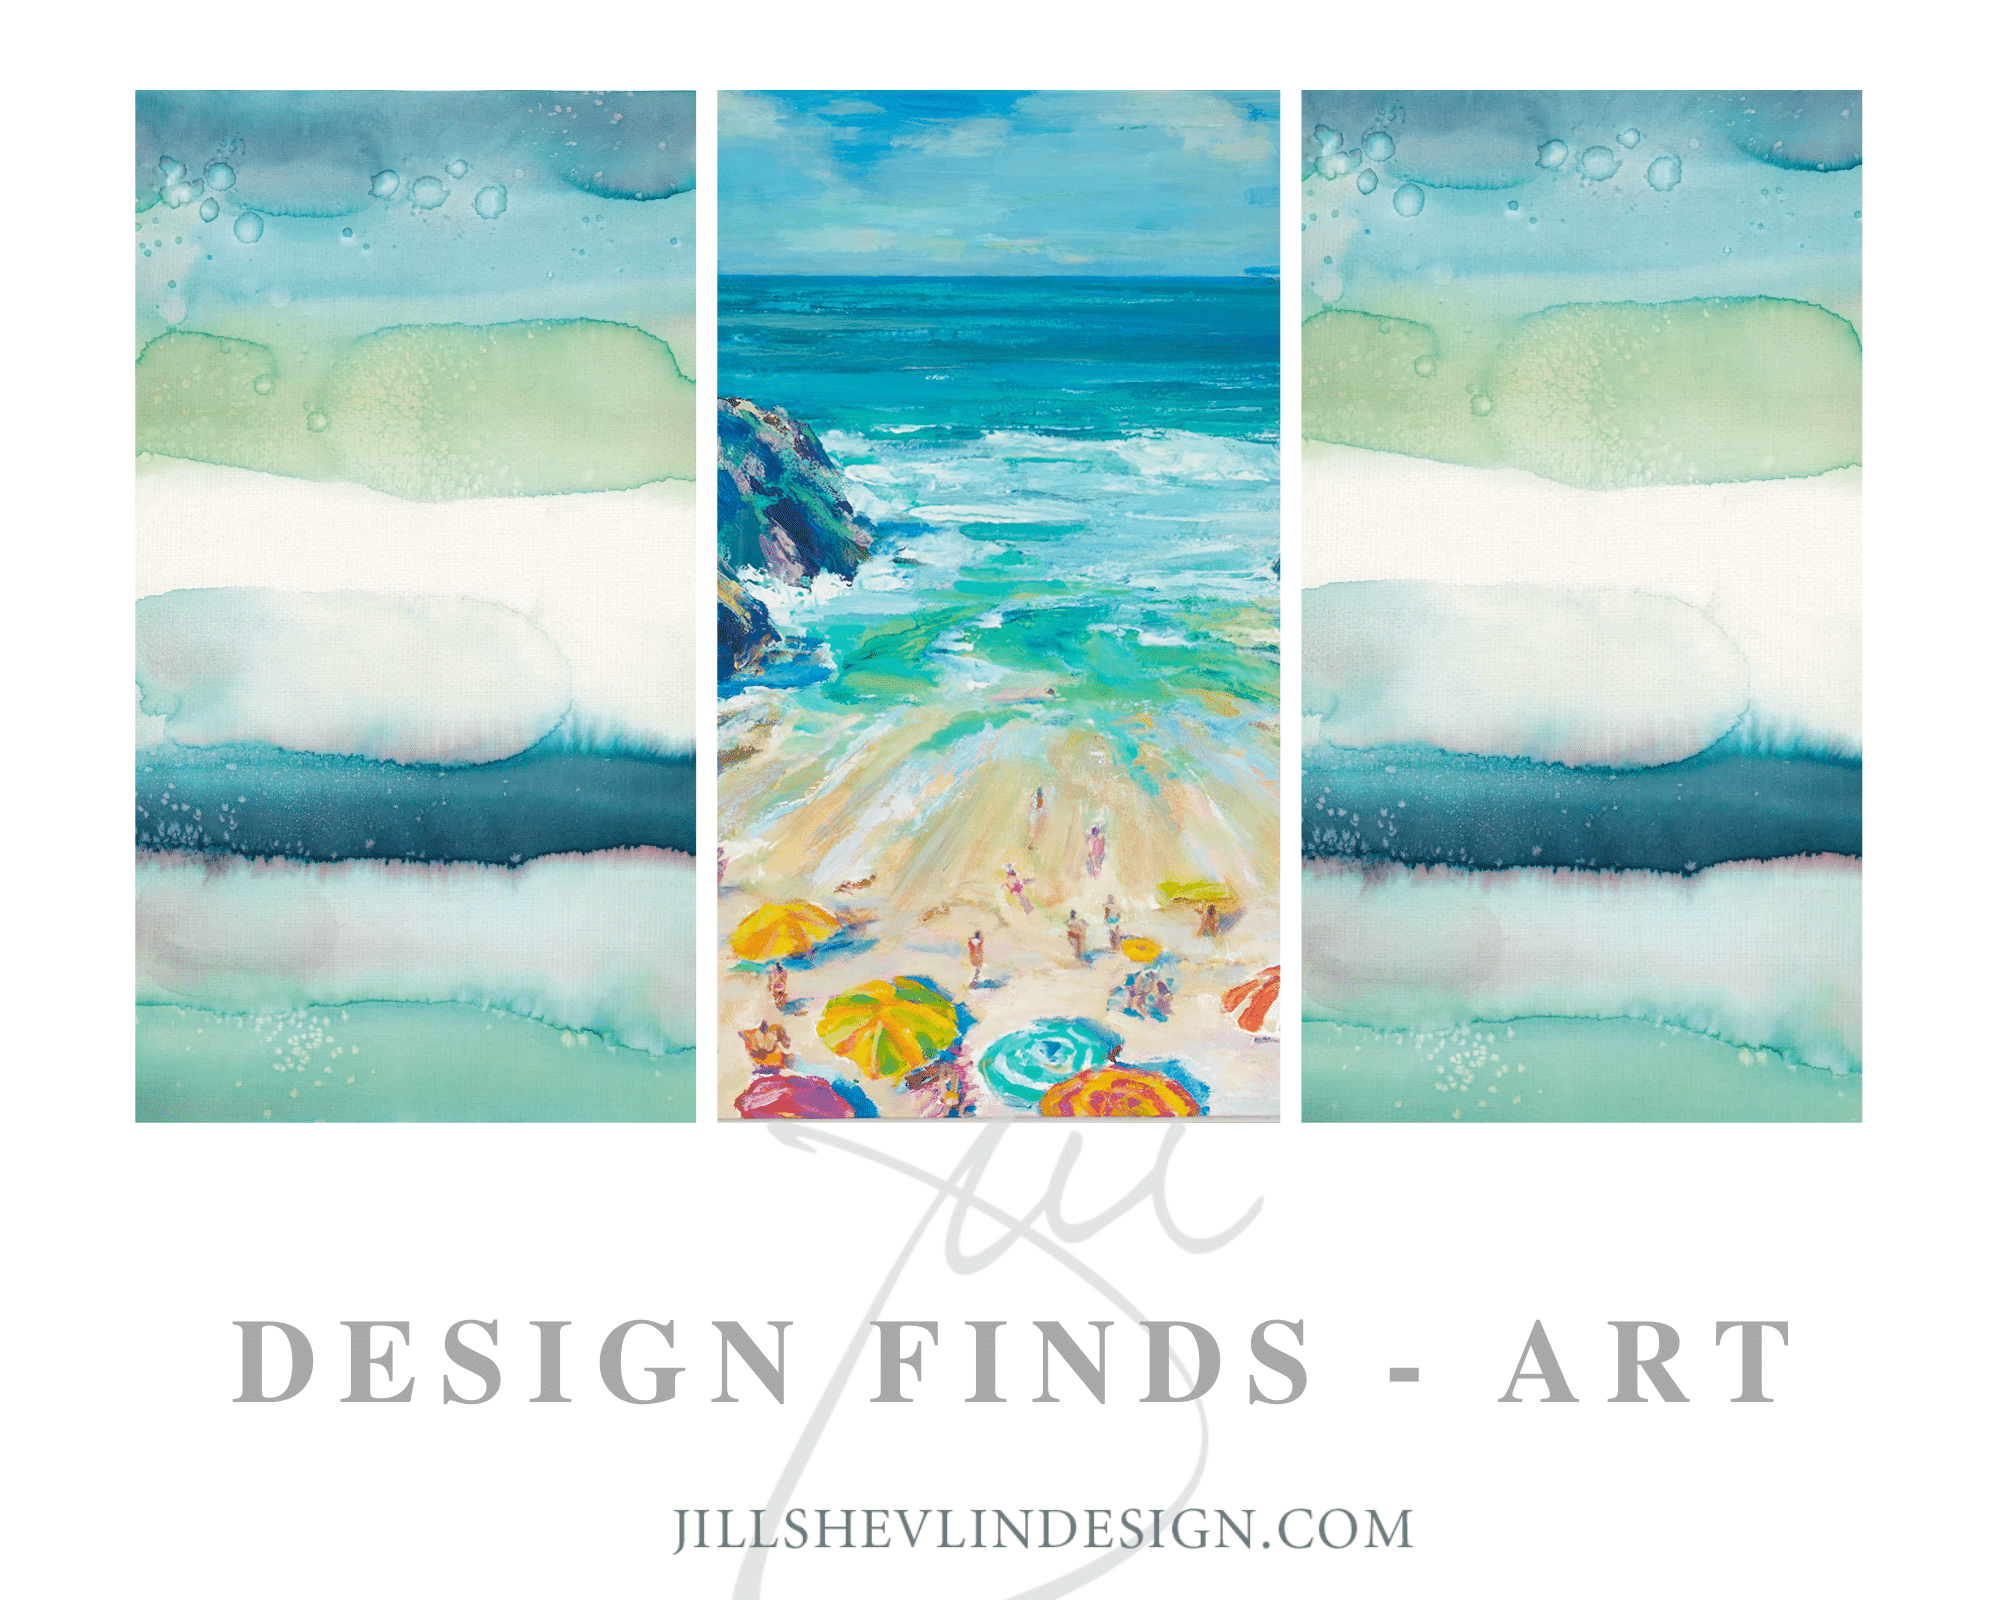 _Design Finds Art Jill Shevlin design vero beach inteior designer